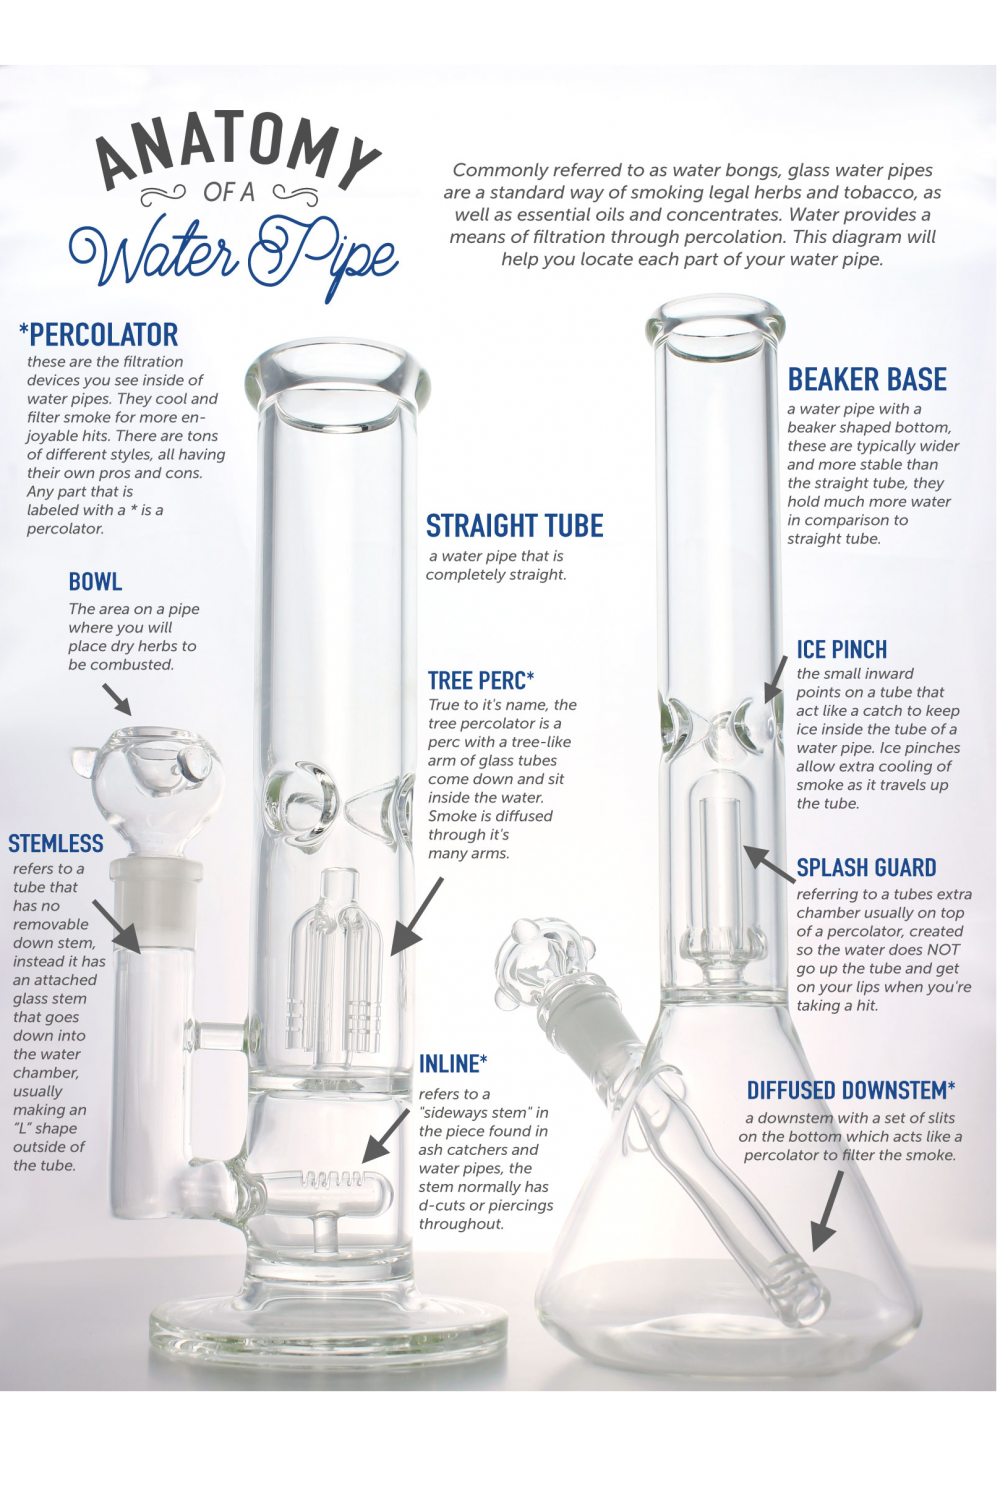 Anatomy of aWater Pipe